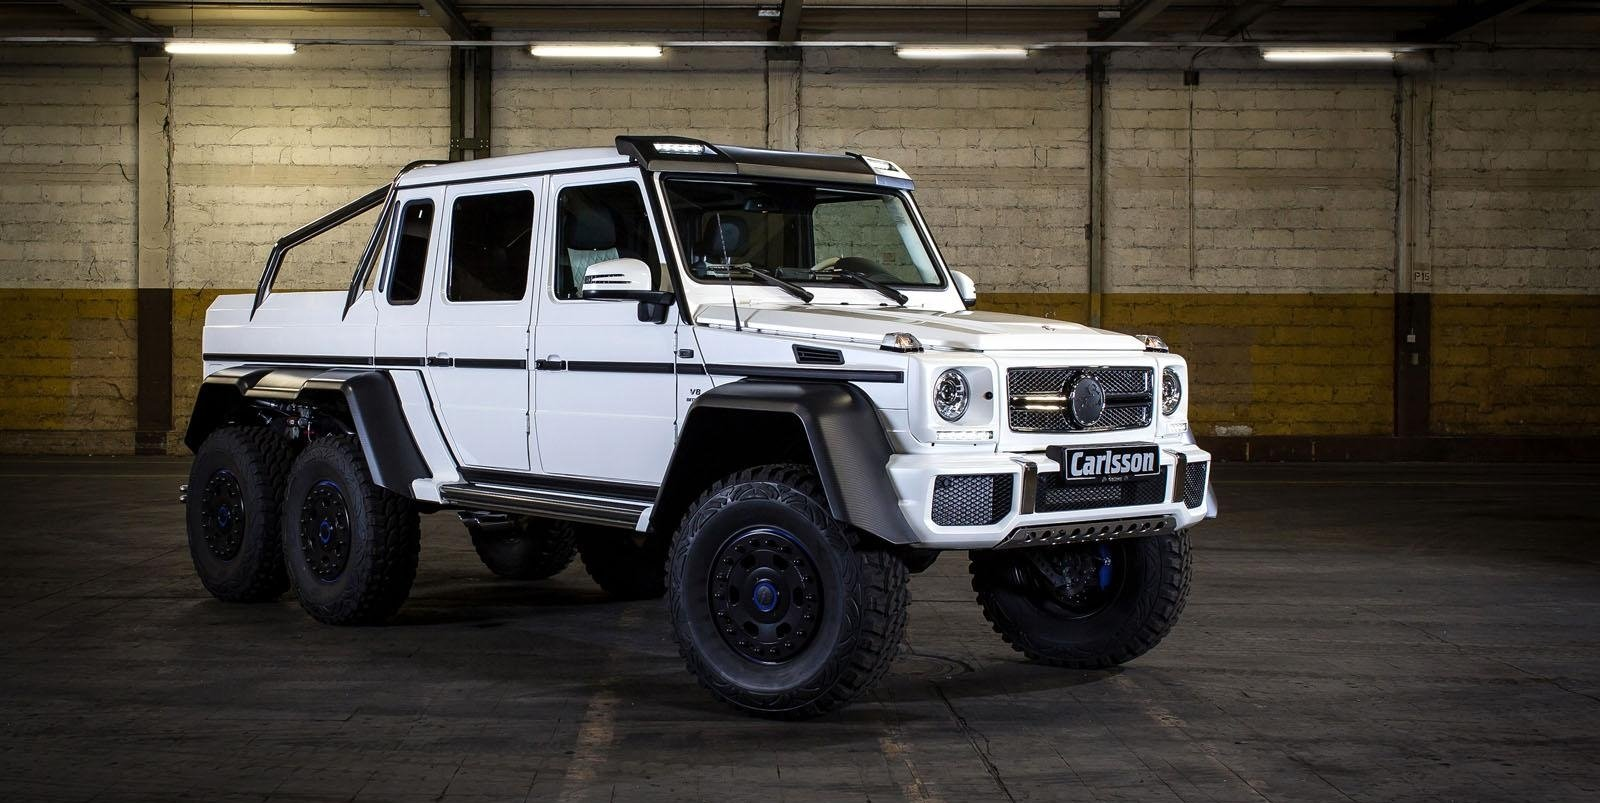 2014 mercedes g63 6 x 6 b_1600x0w mercedes g class reviews, specs & prices top speed  at bakdesigns.co